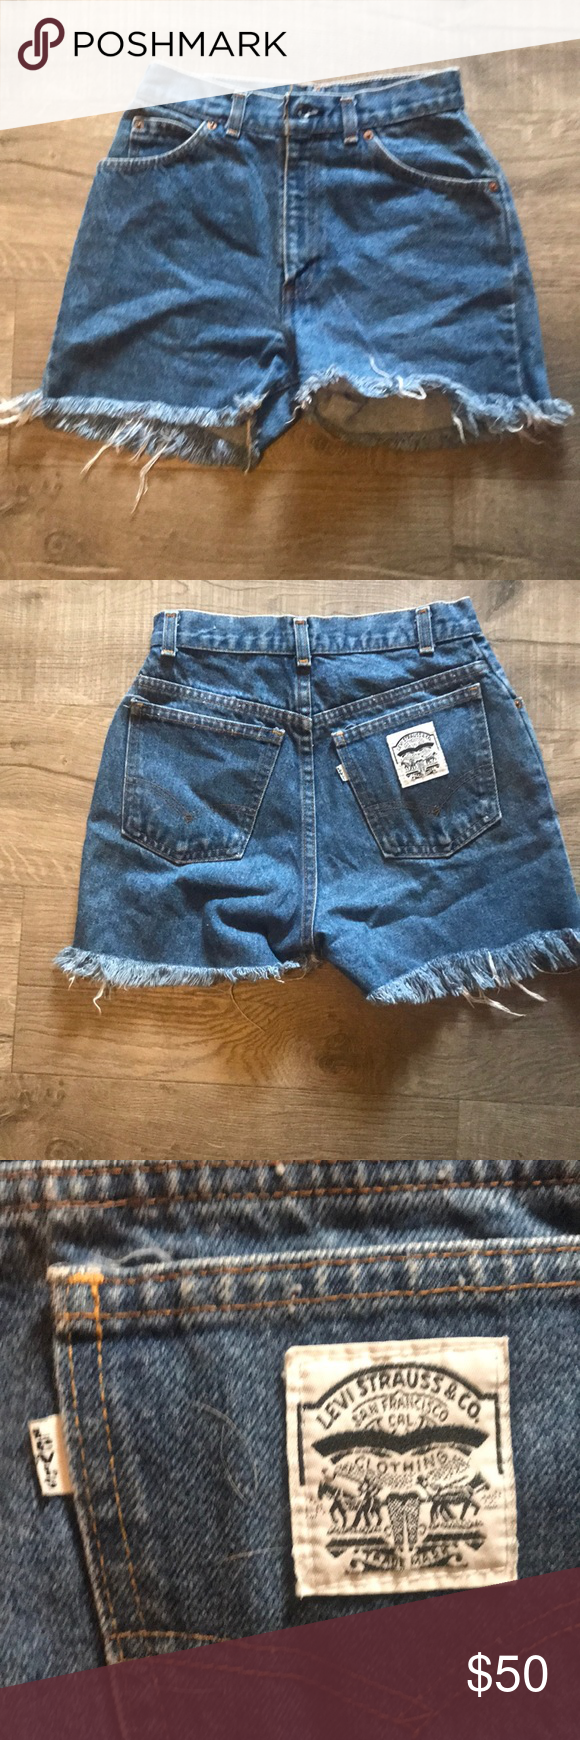 52928e0c0f8 Levi short Great condition Levi s !! ) deff the mom jean high waisted feel